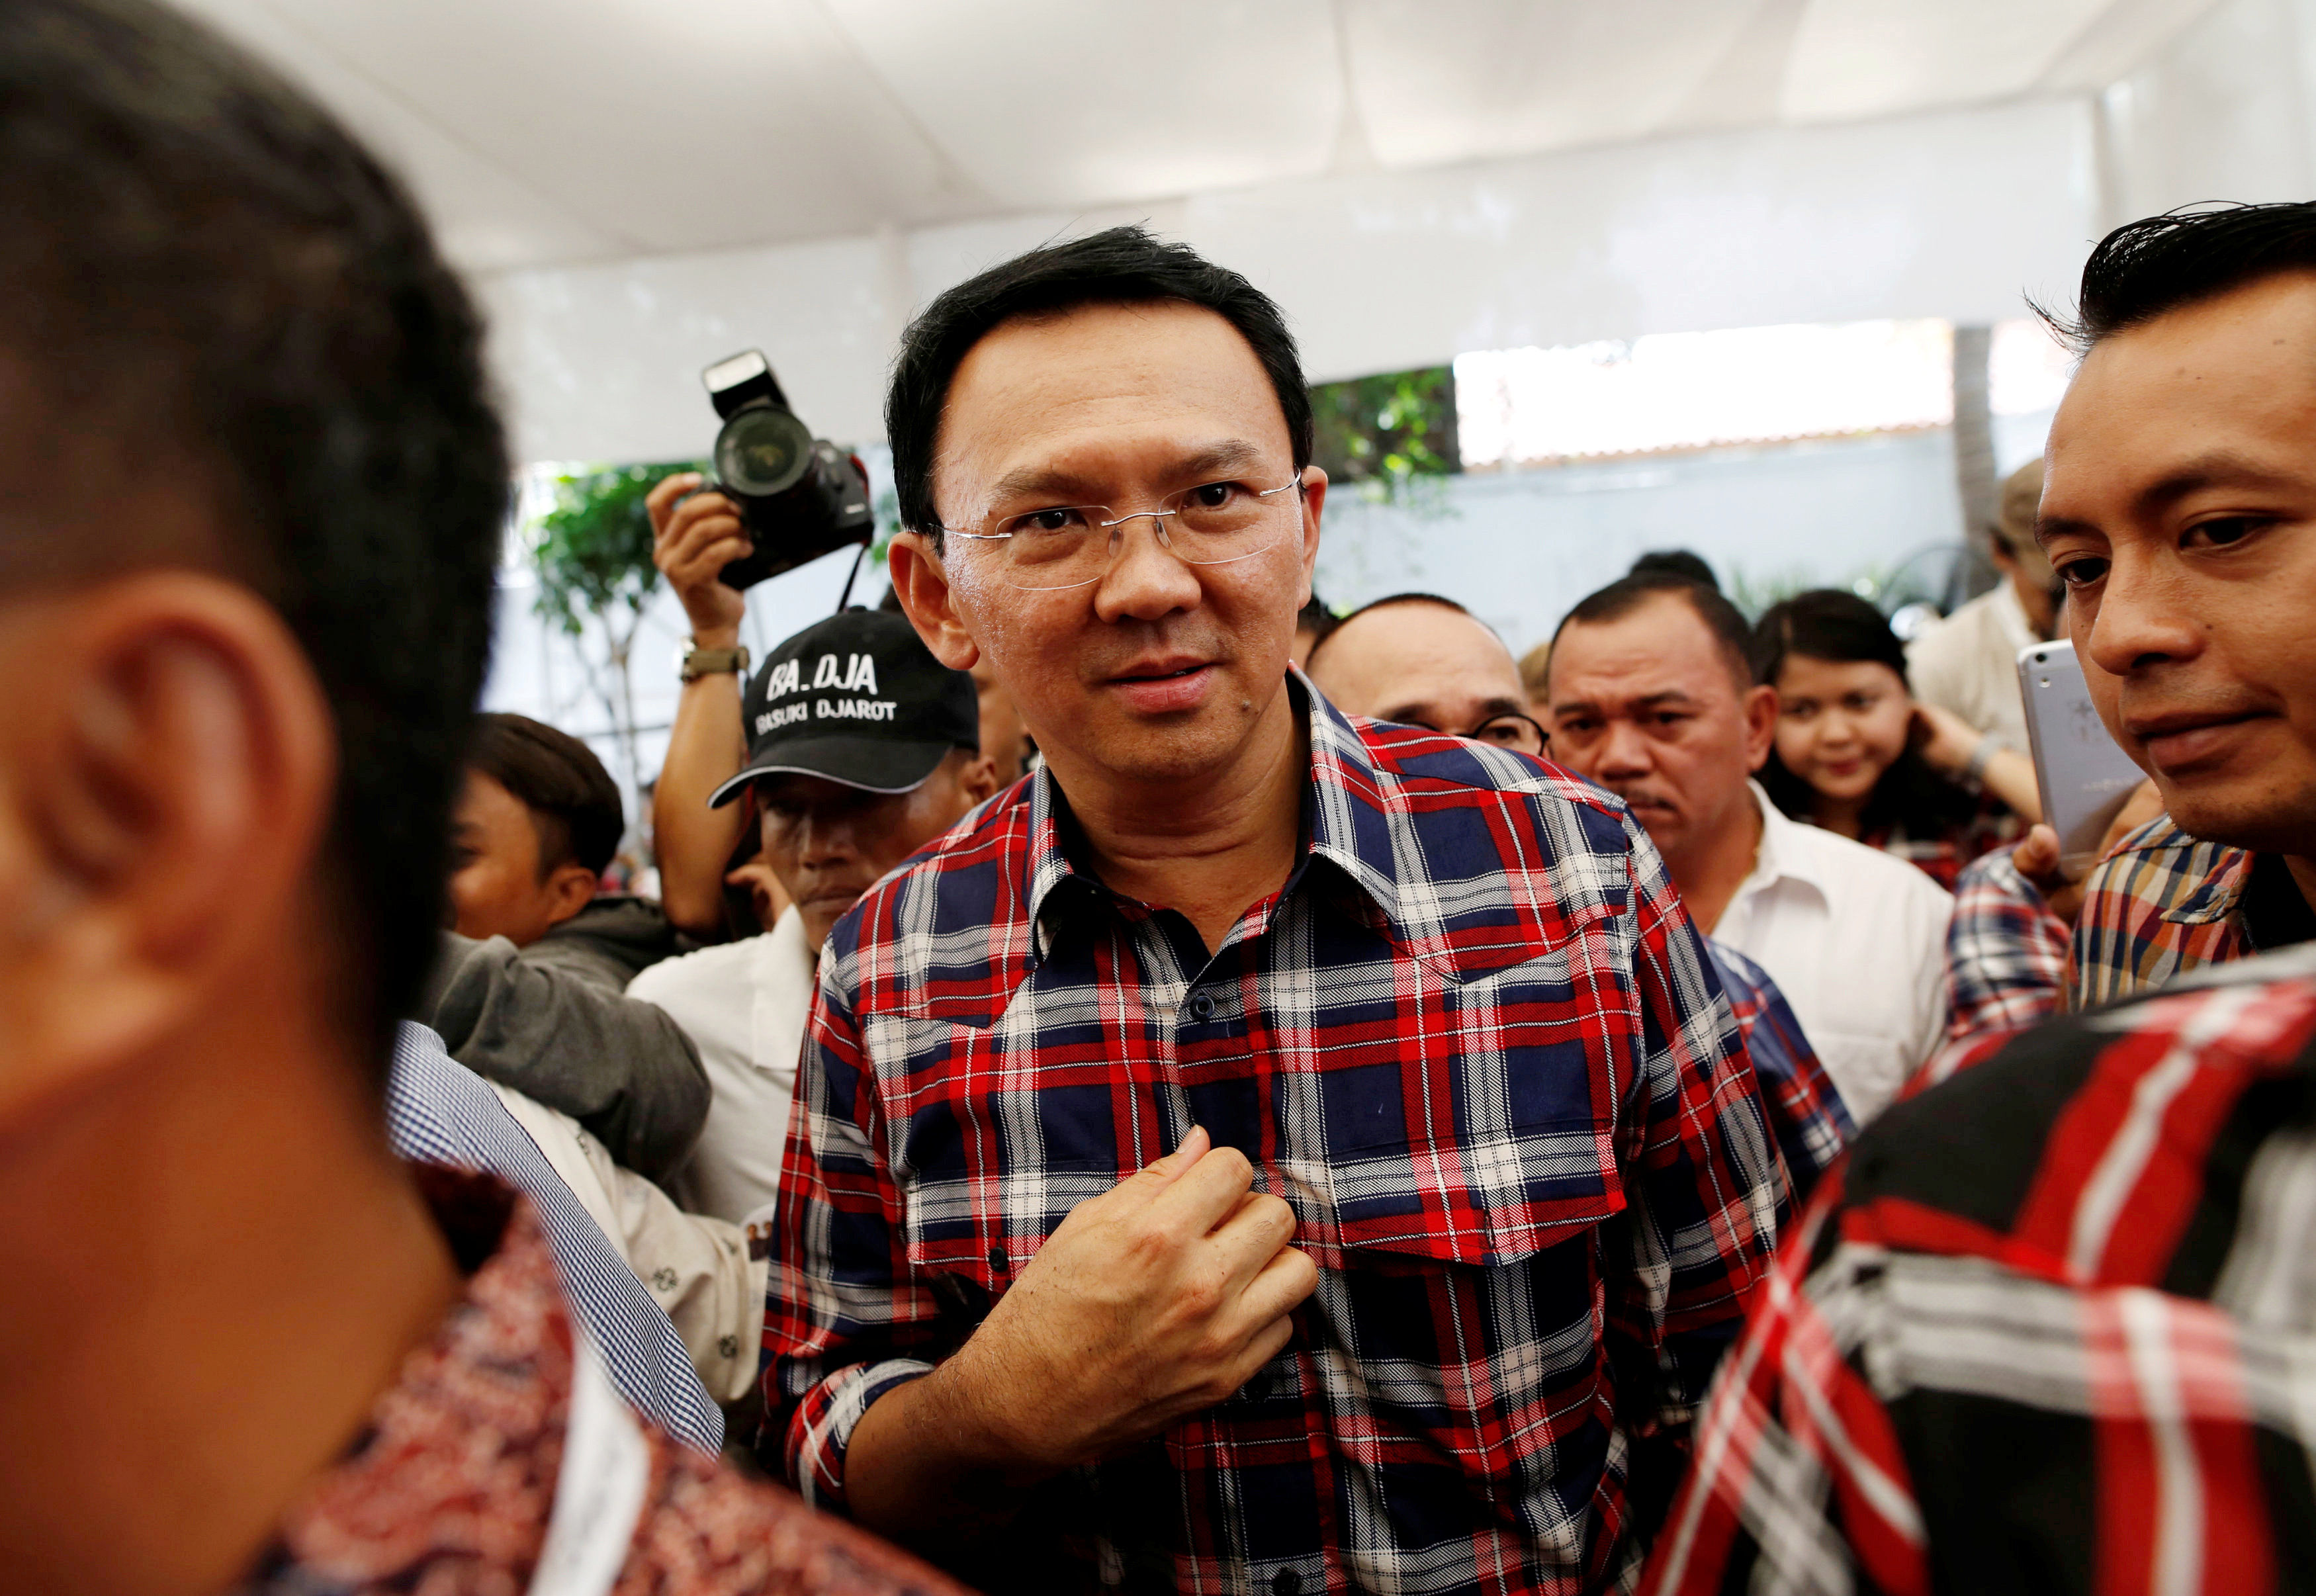 Jakarta Governor Basuki Tjahaja Purnama, nicknamed  Ahok,  leaves the stage after meeting with supporters while campaigning for an upcoming election in Jakarta on Nov. 16, 2016